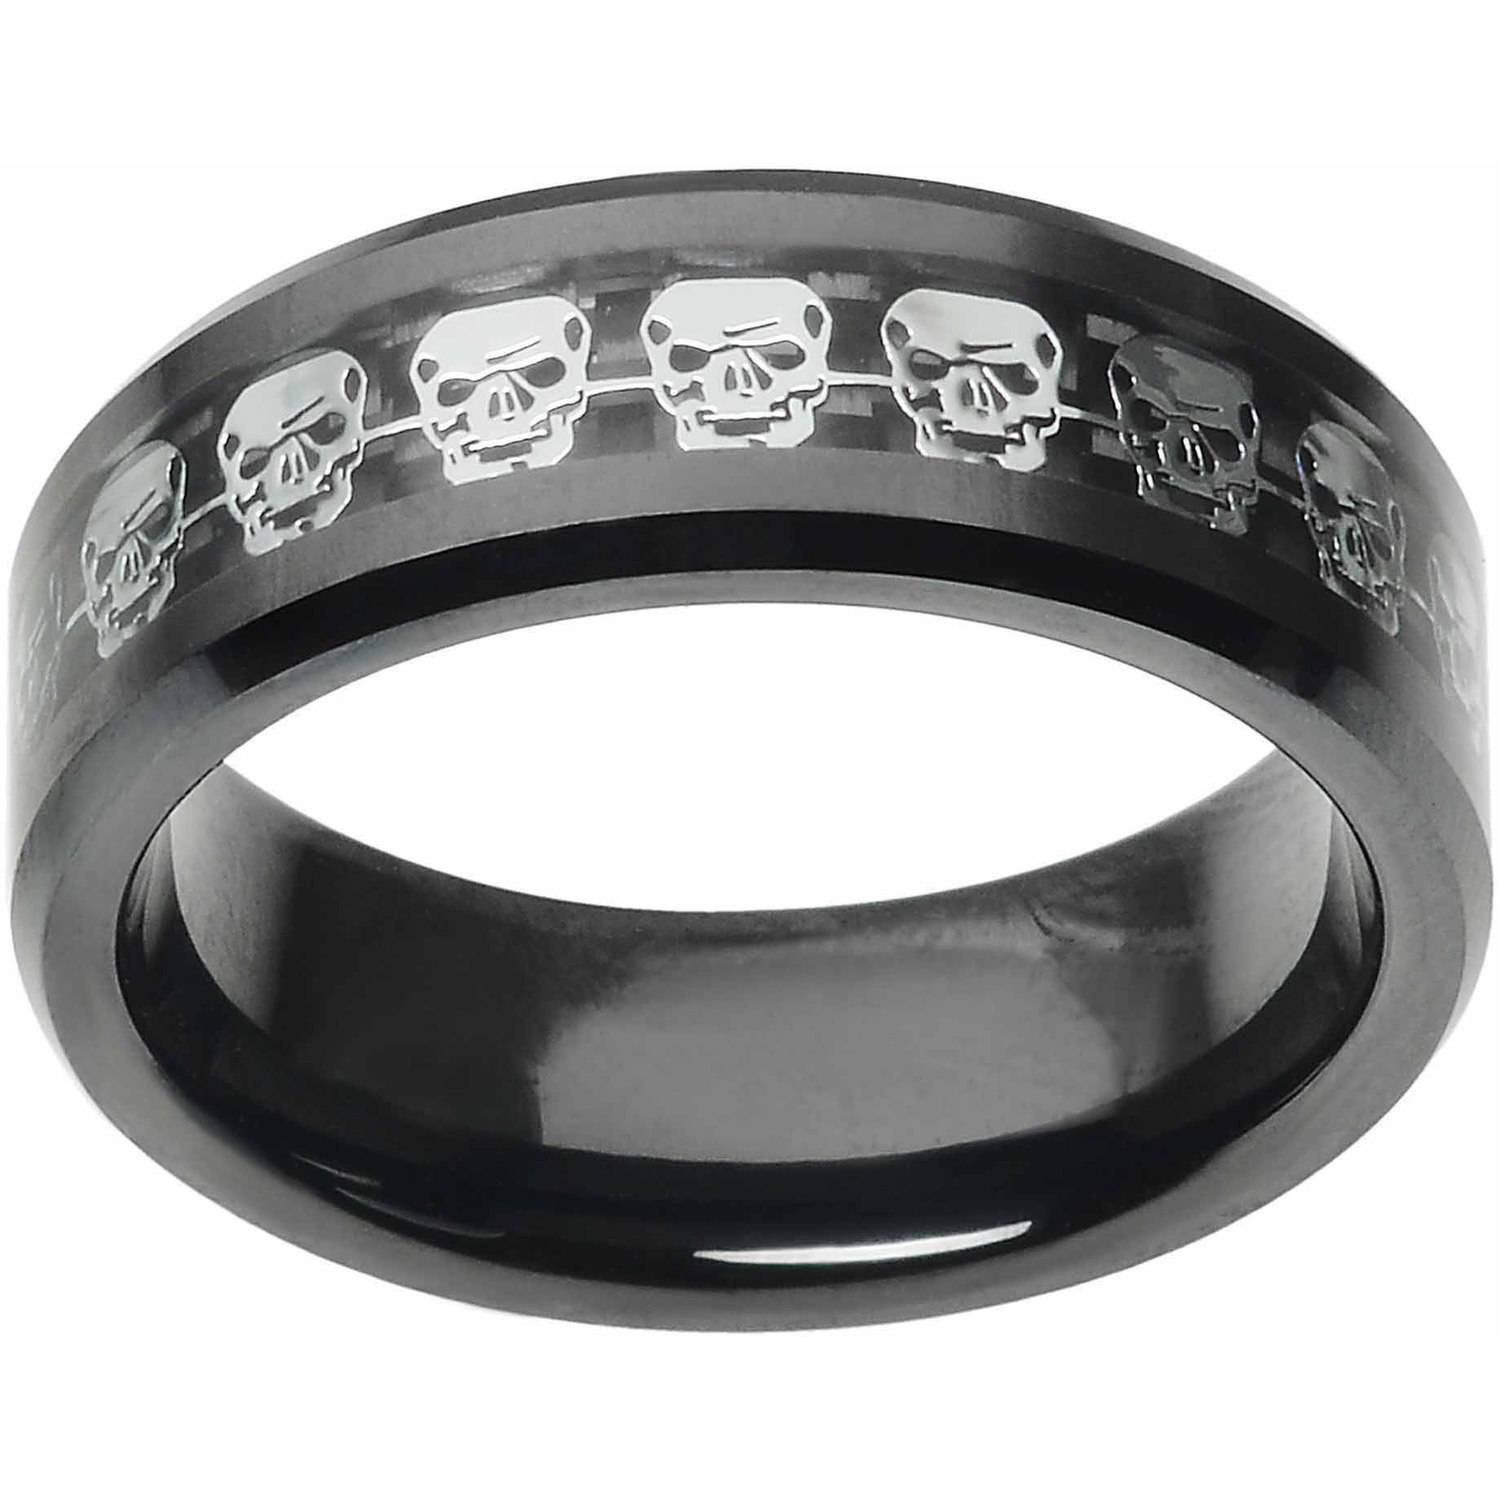 Daxx Men's Ceramic Carbon Fiber Skull In